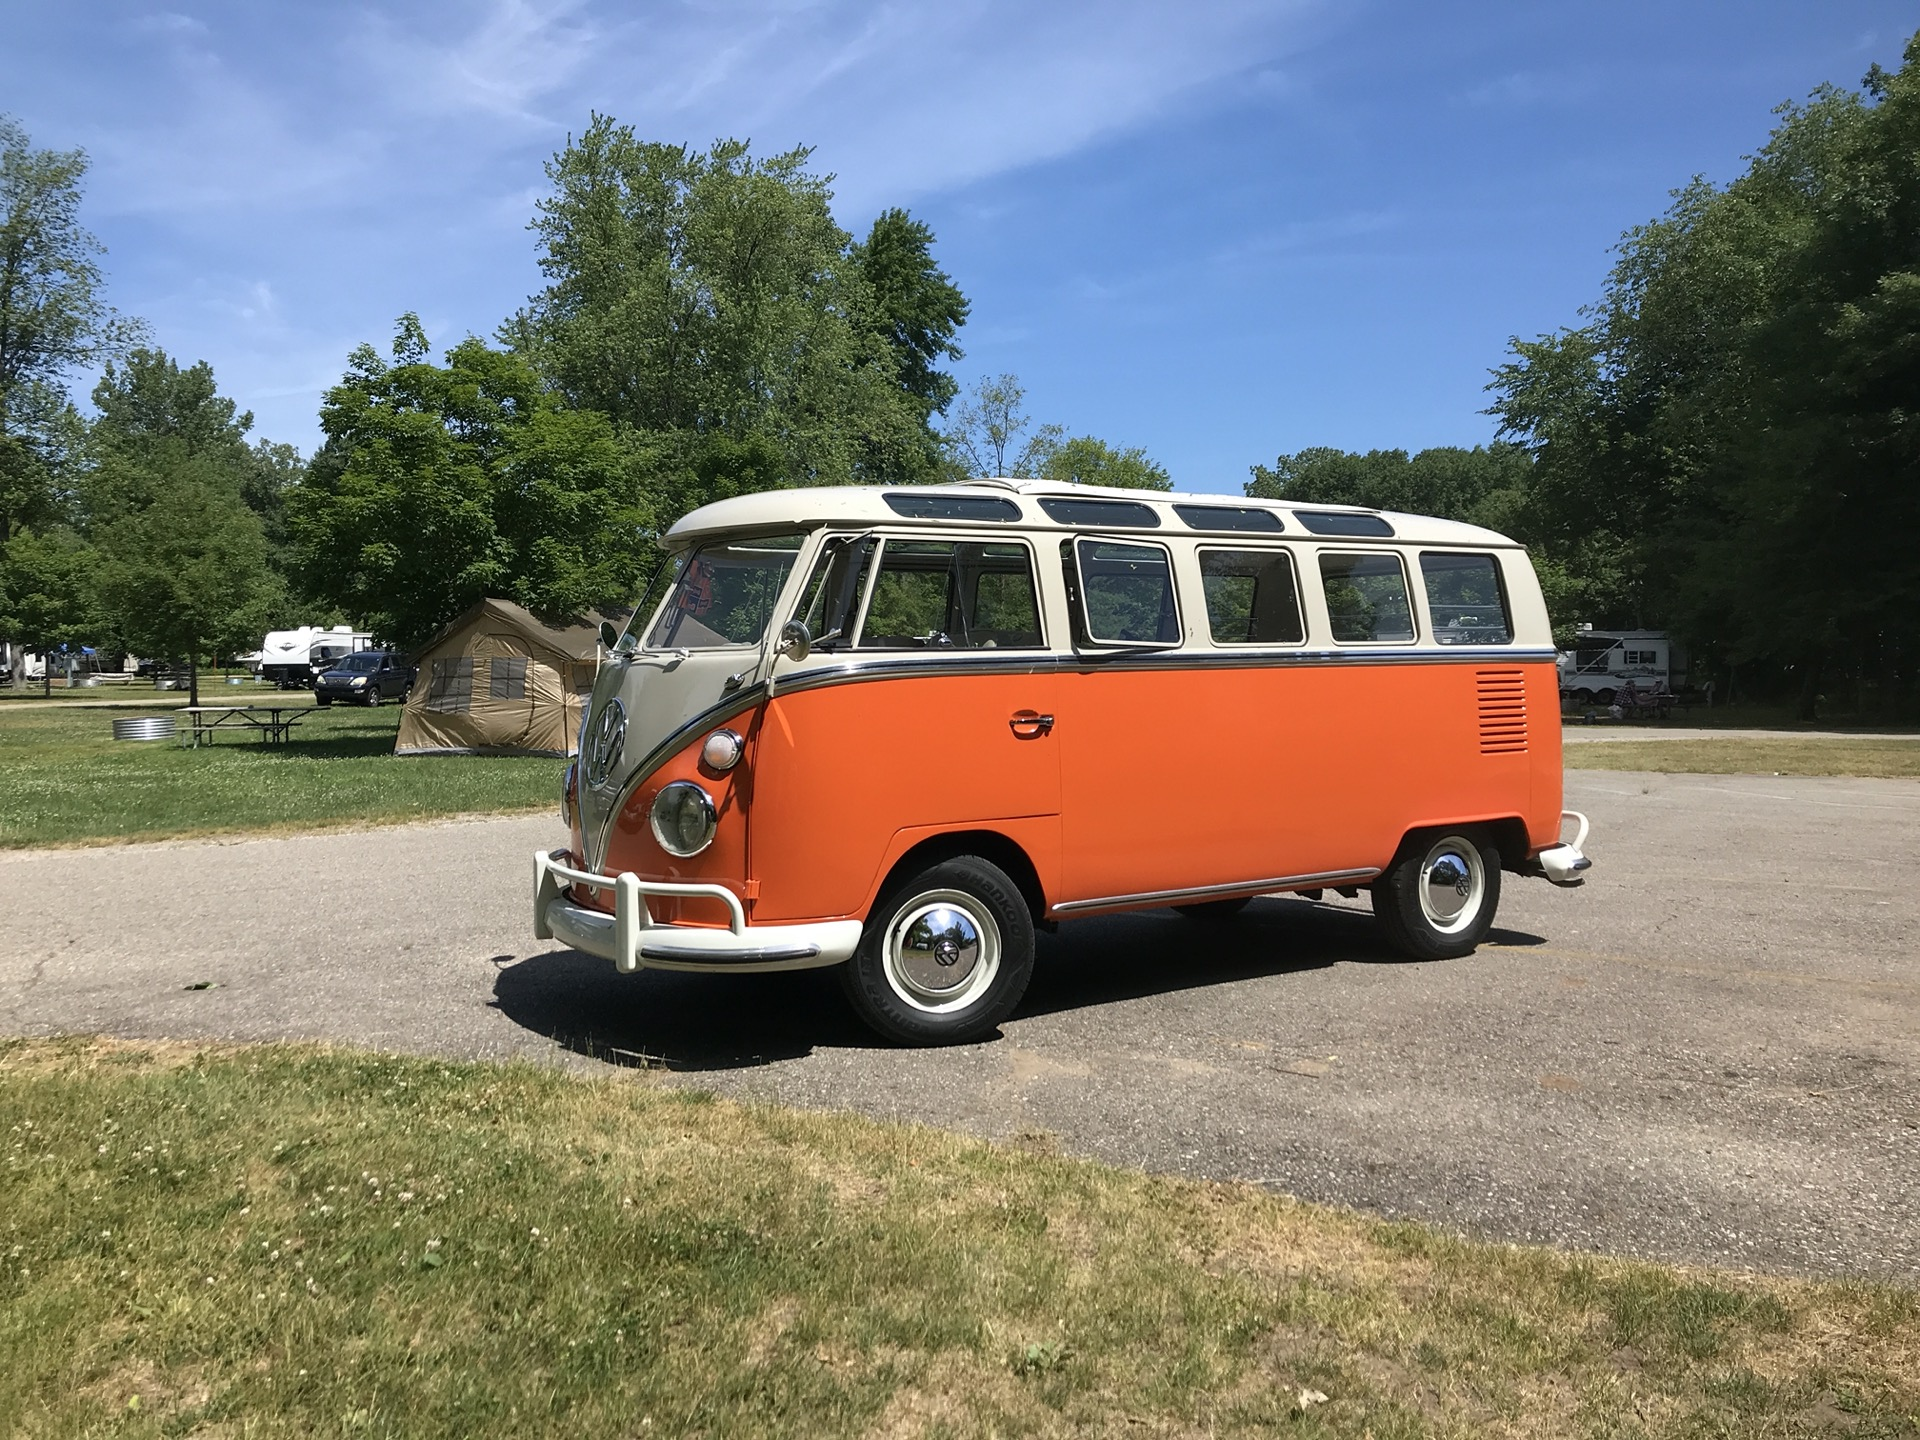 1967 Vw Bus Attracts The Kind Buds We All Need